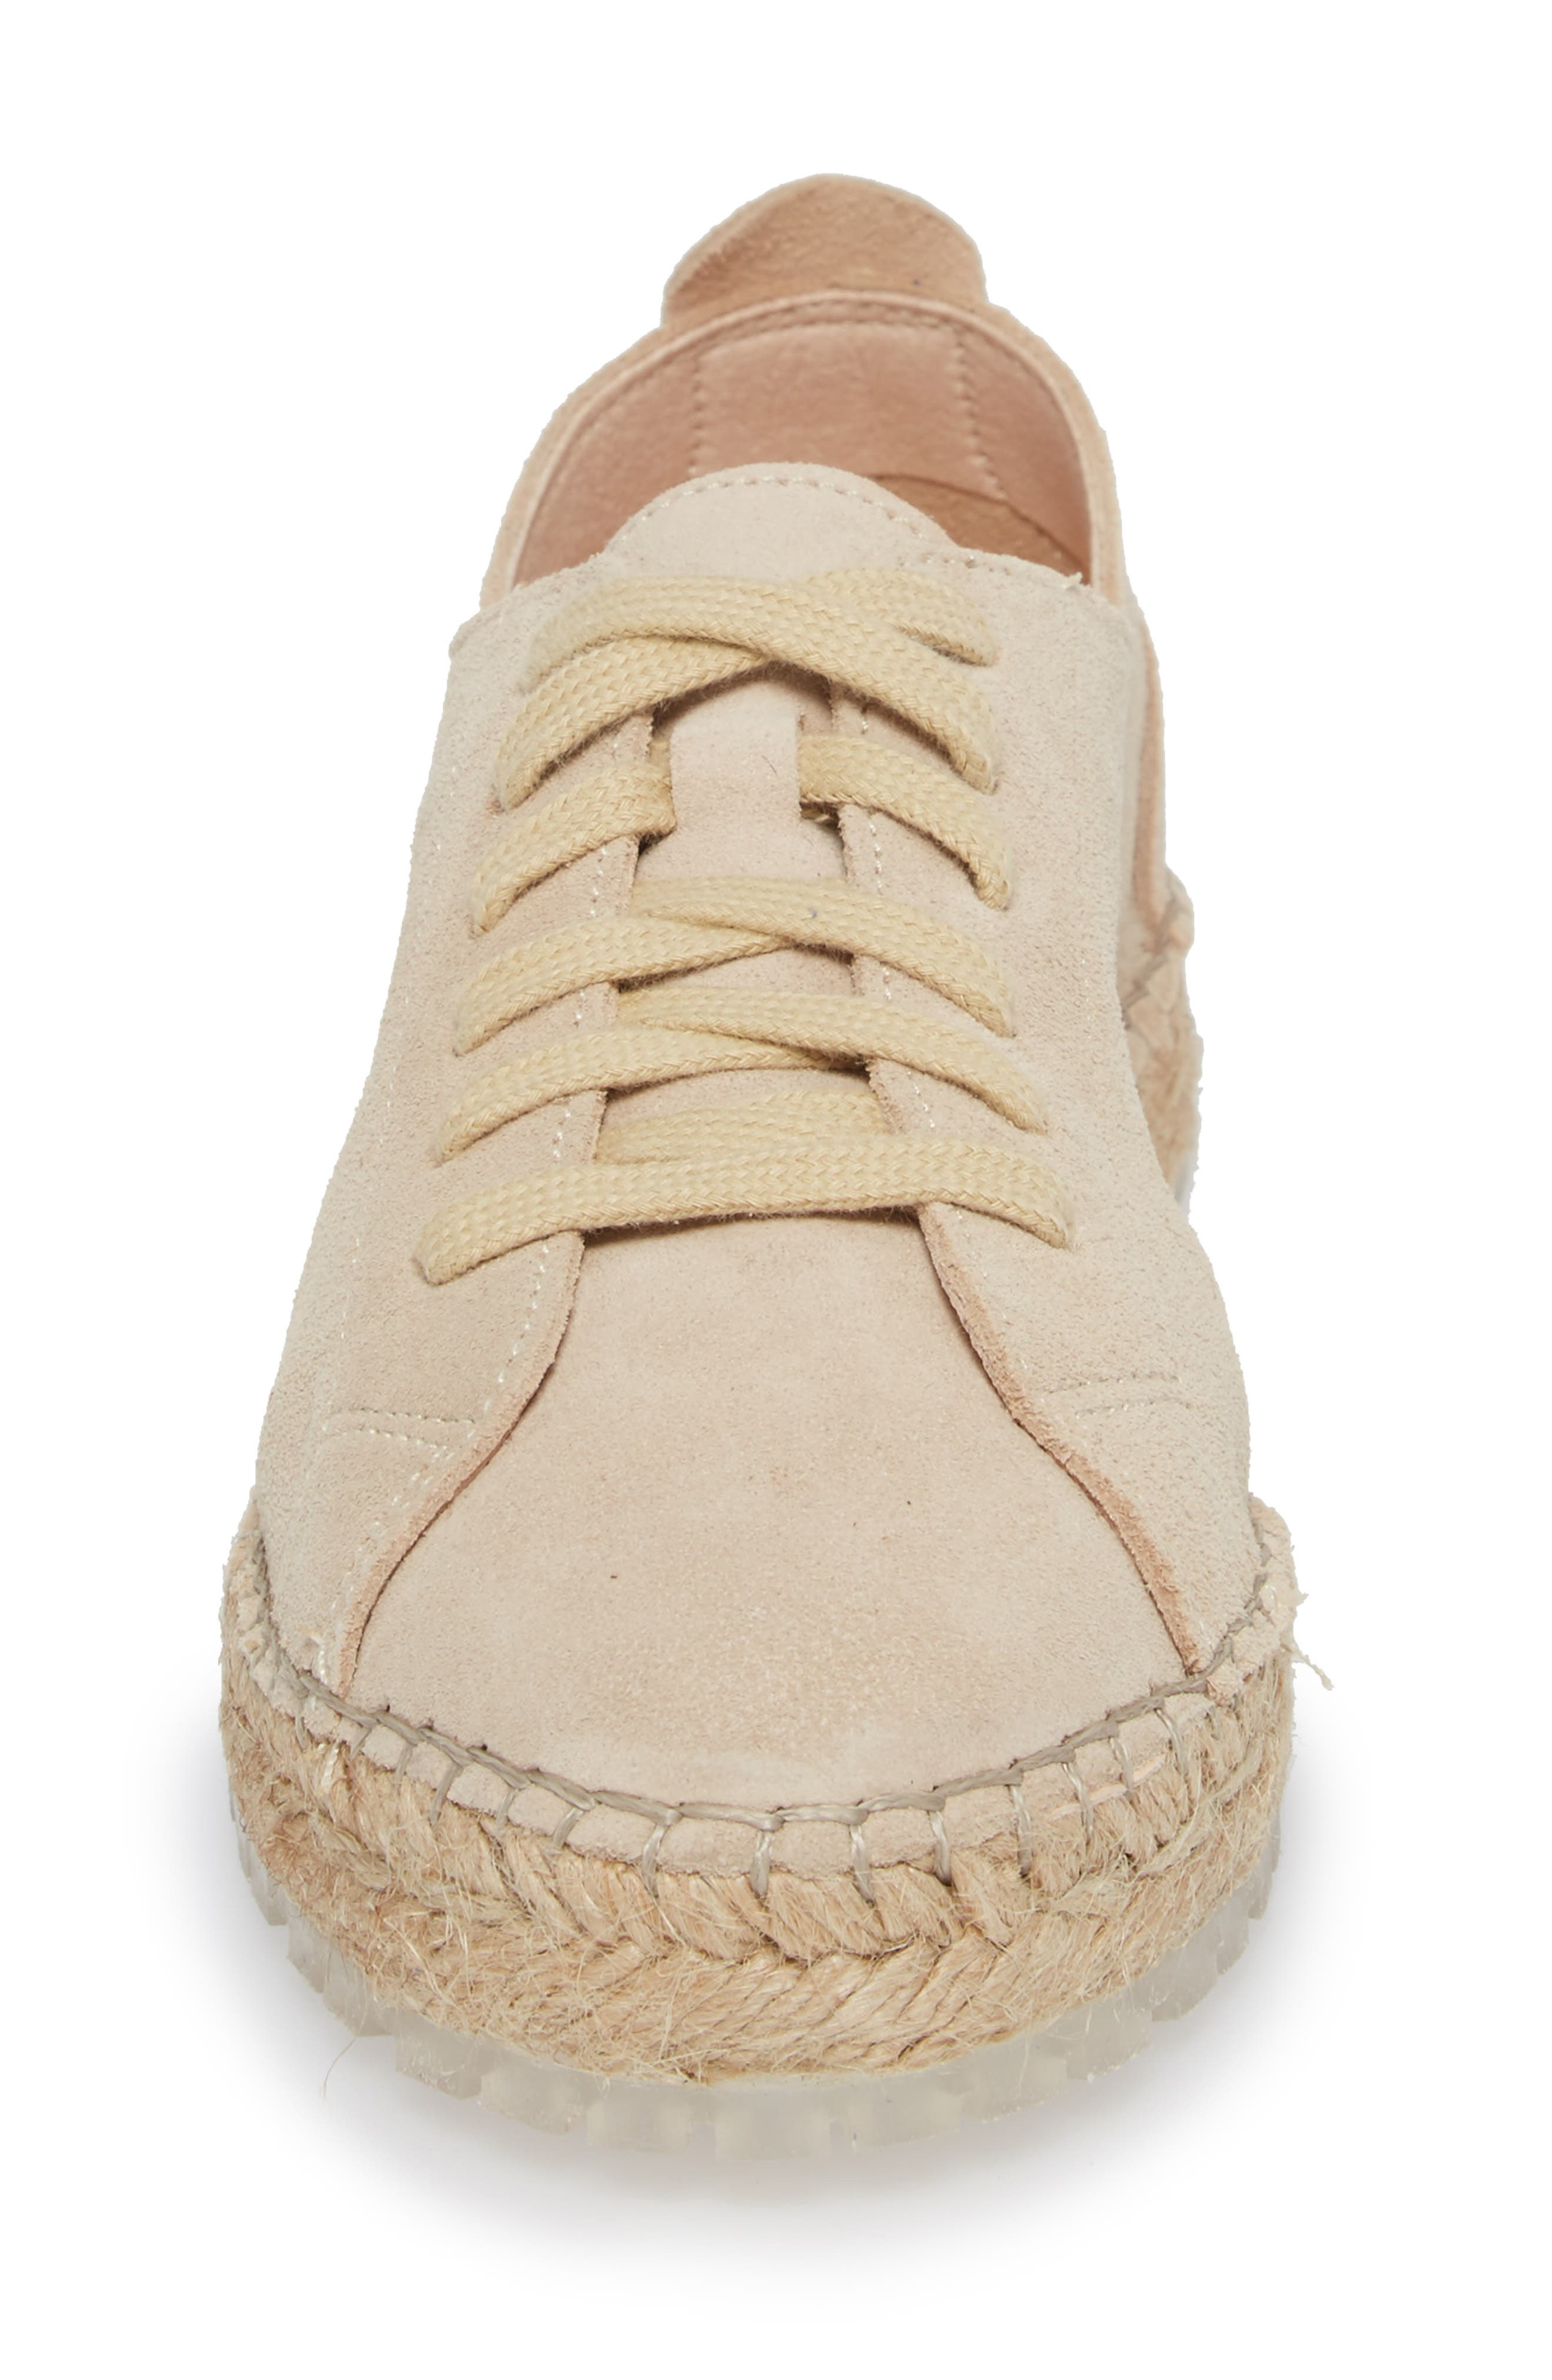 Zane Espadrille Sneaker,                             Alternate thumbnail 4, color,                             Taupe Suede